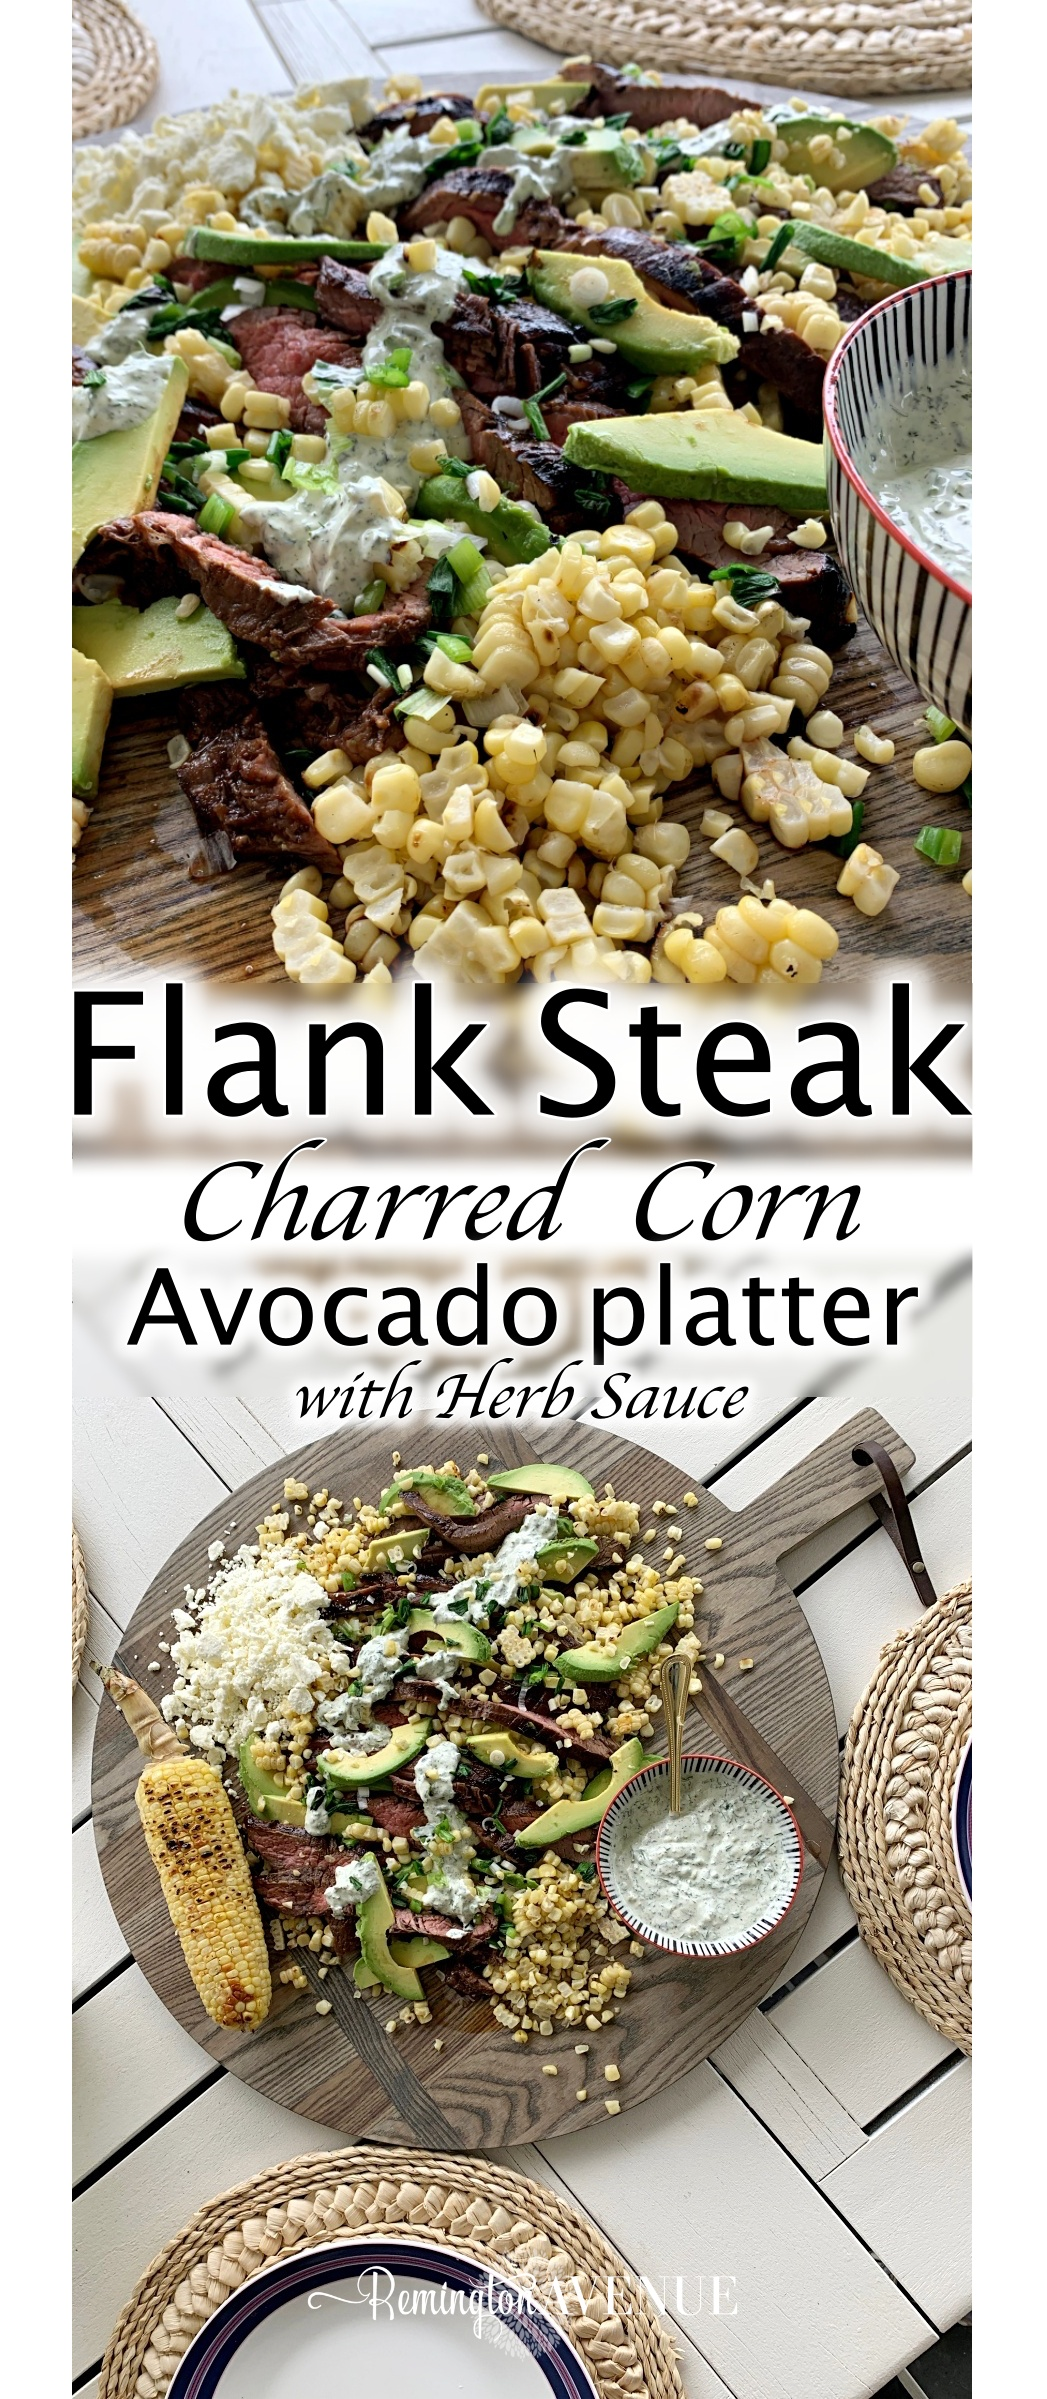 Grilled Flank Steak, Charred Corn & Avocado Salad with a creamy herb sauce